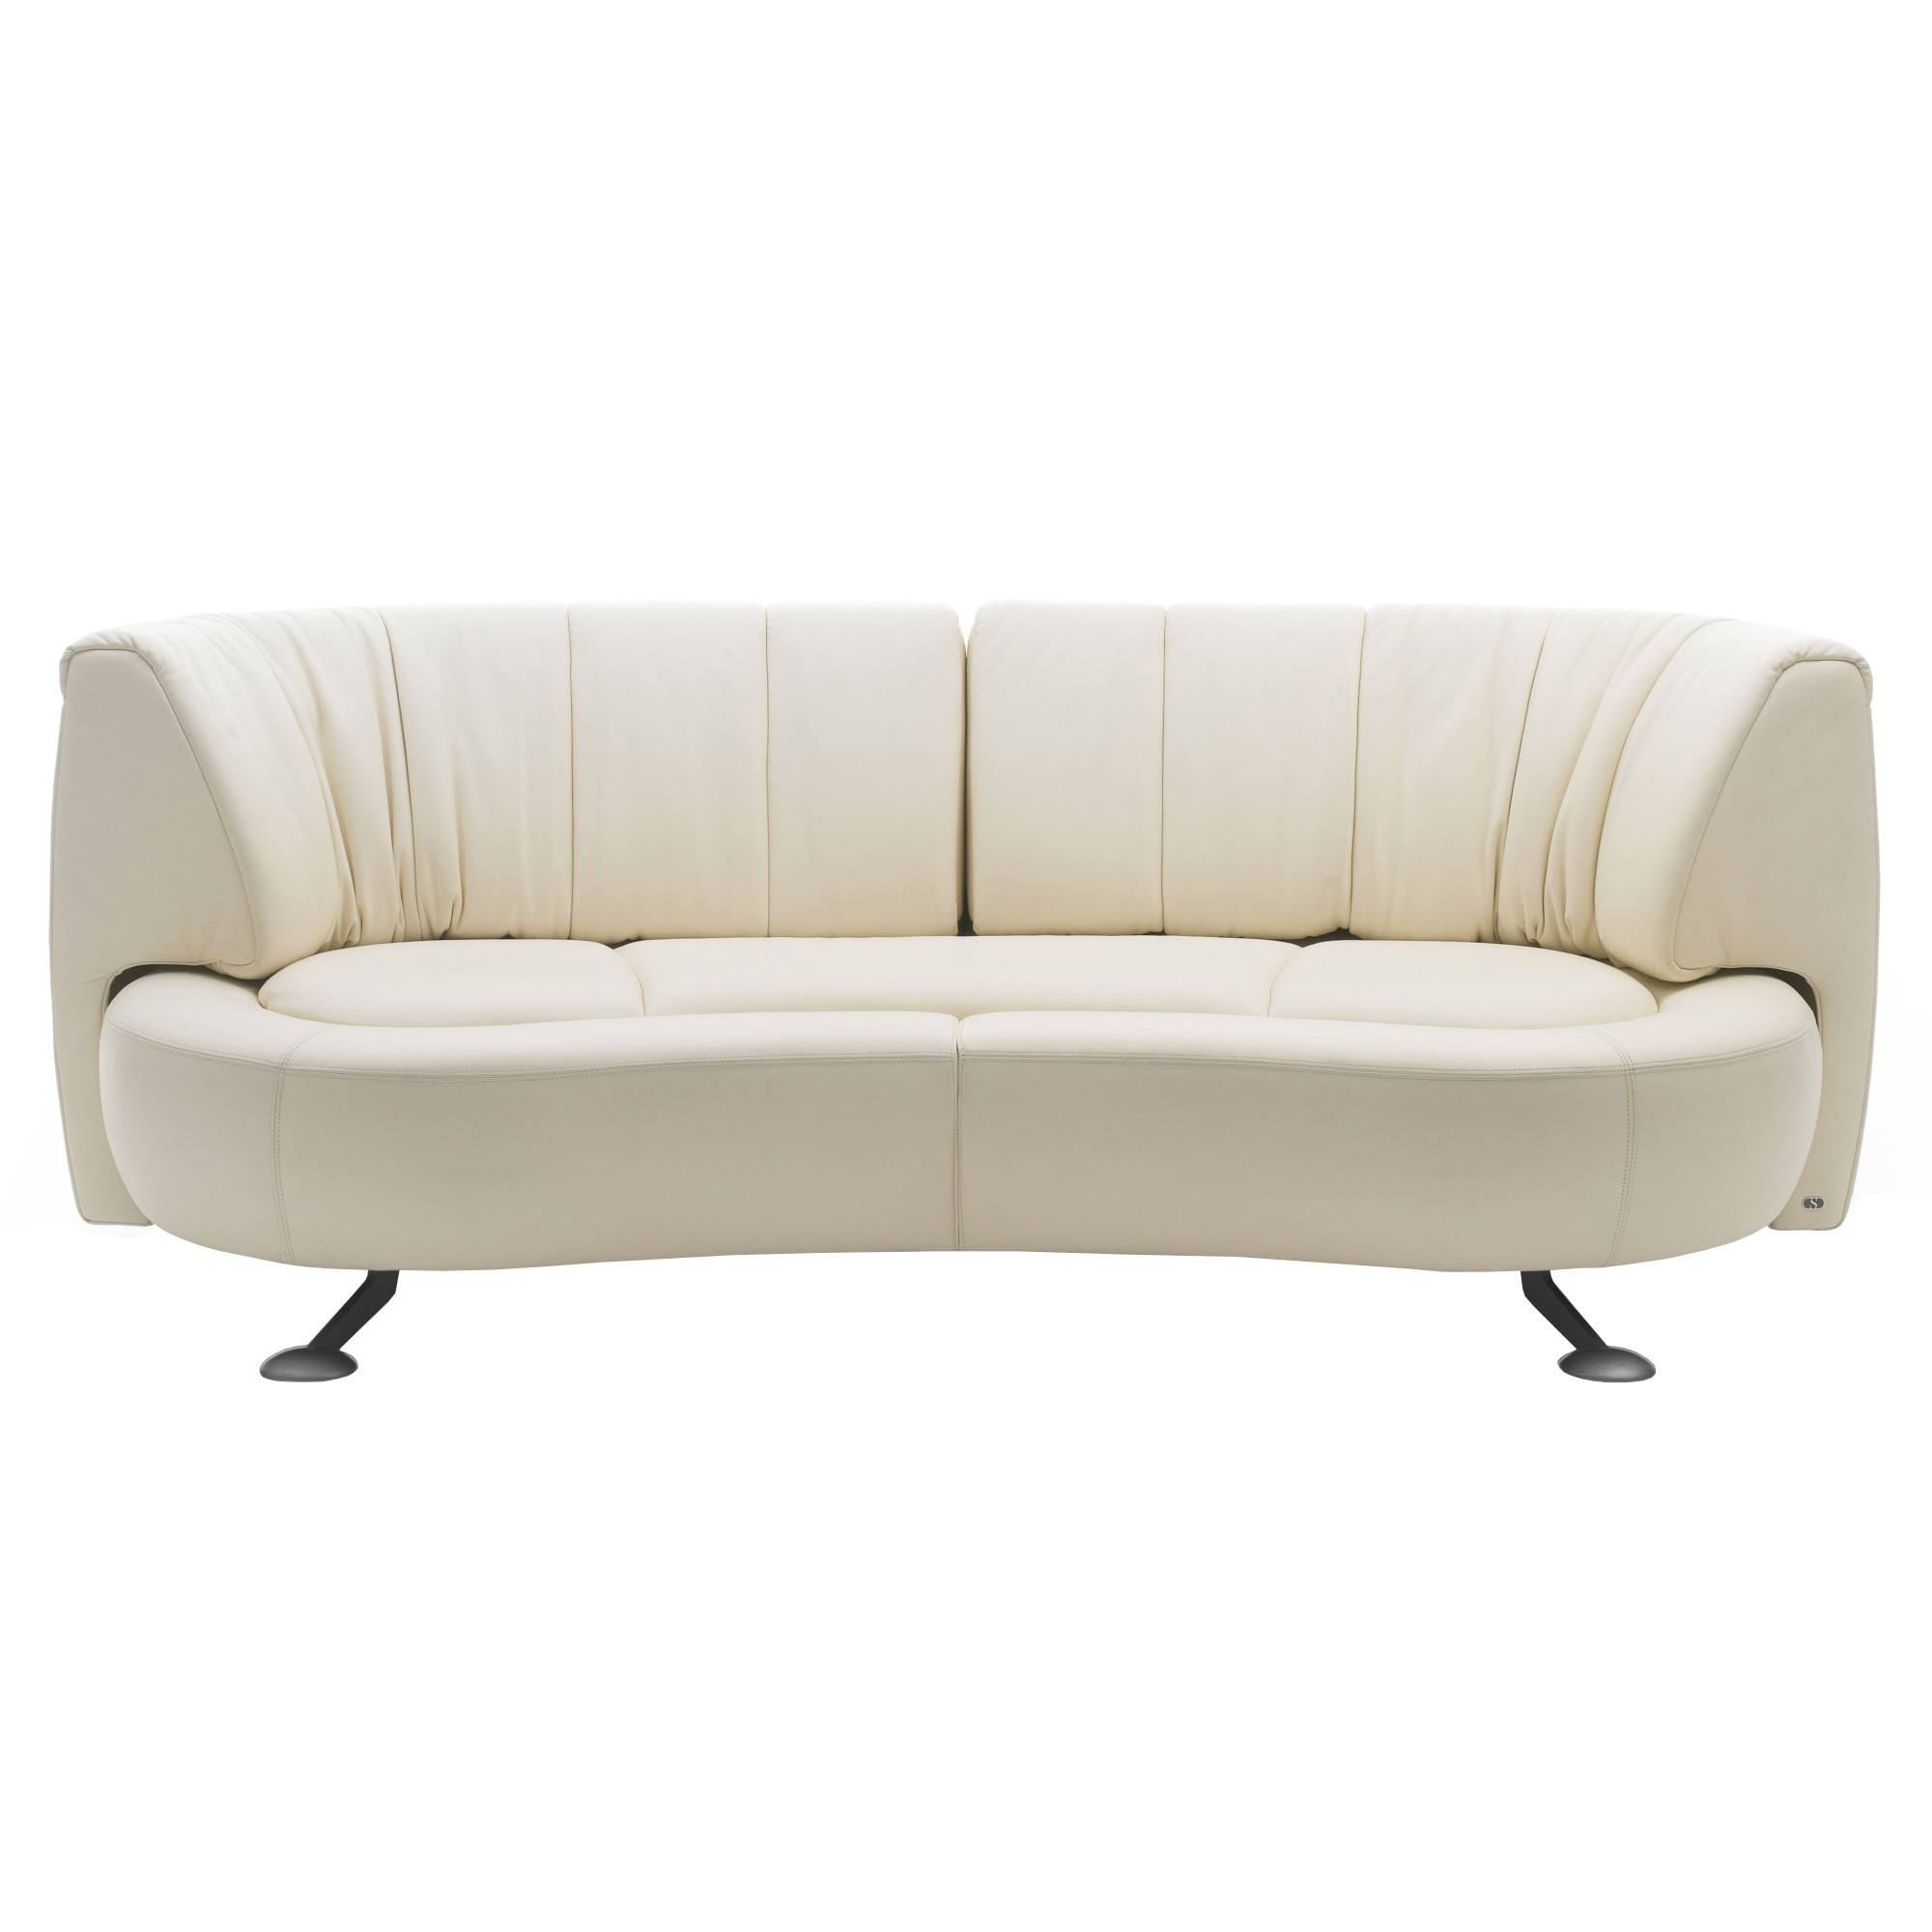 Full Size of De Sede Sofa Sessel Gebraucht Kaufen Endless Ds 600 Bi Outlet Furniture Uk 47 Bed Preise For Sale By Preisliste Schweiz Couch 164 Linear Sofas Armchairs And Sofa De Sede Sofa